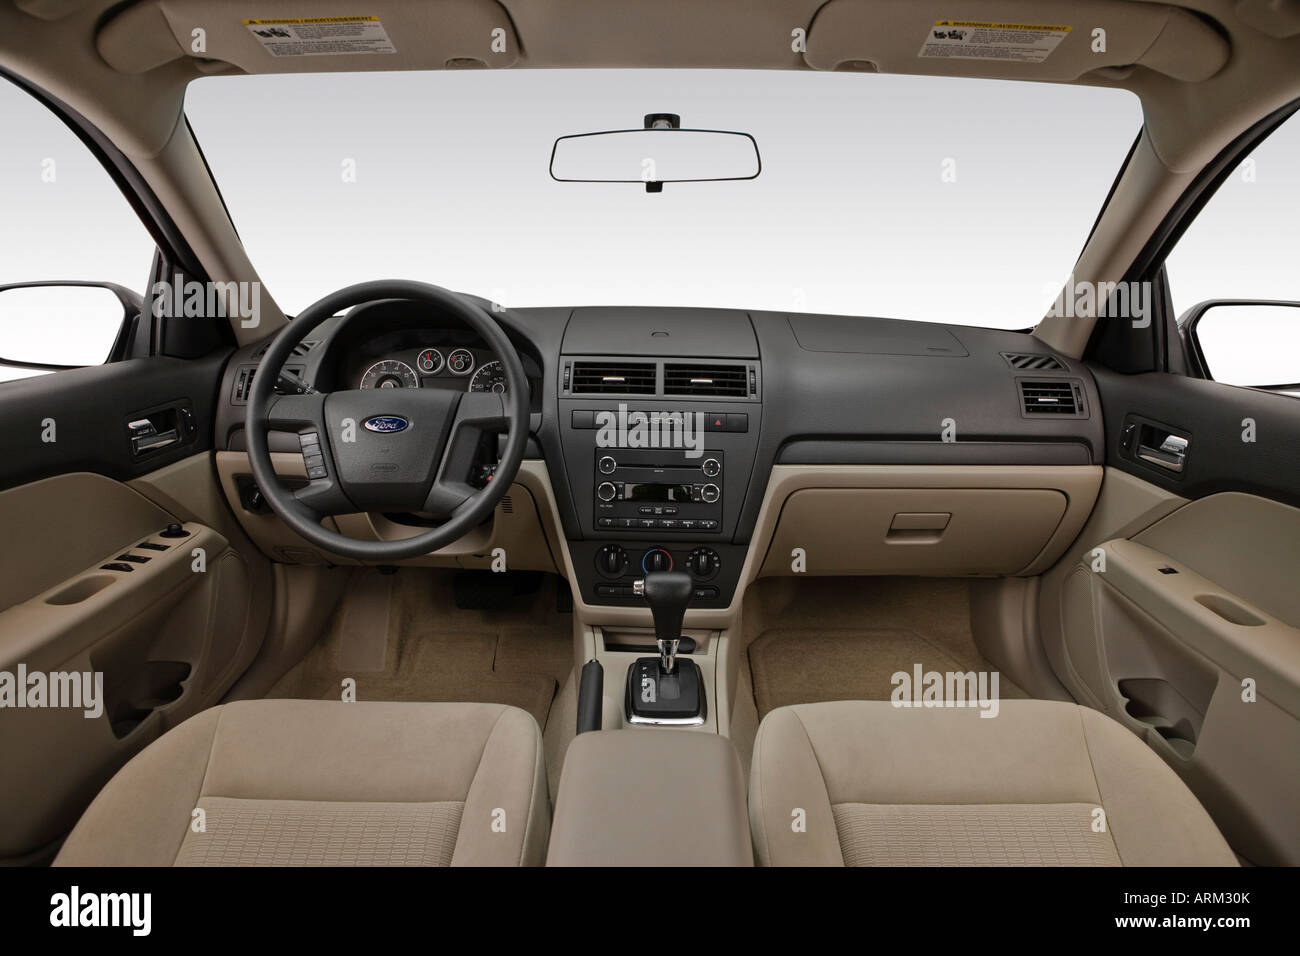 2008 Ford Fusion S in White - Dashboard, center console, gear shifter view - Stock Image